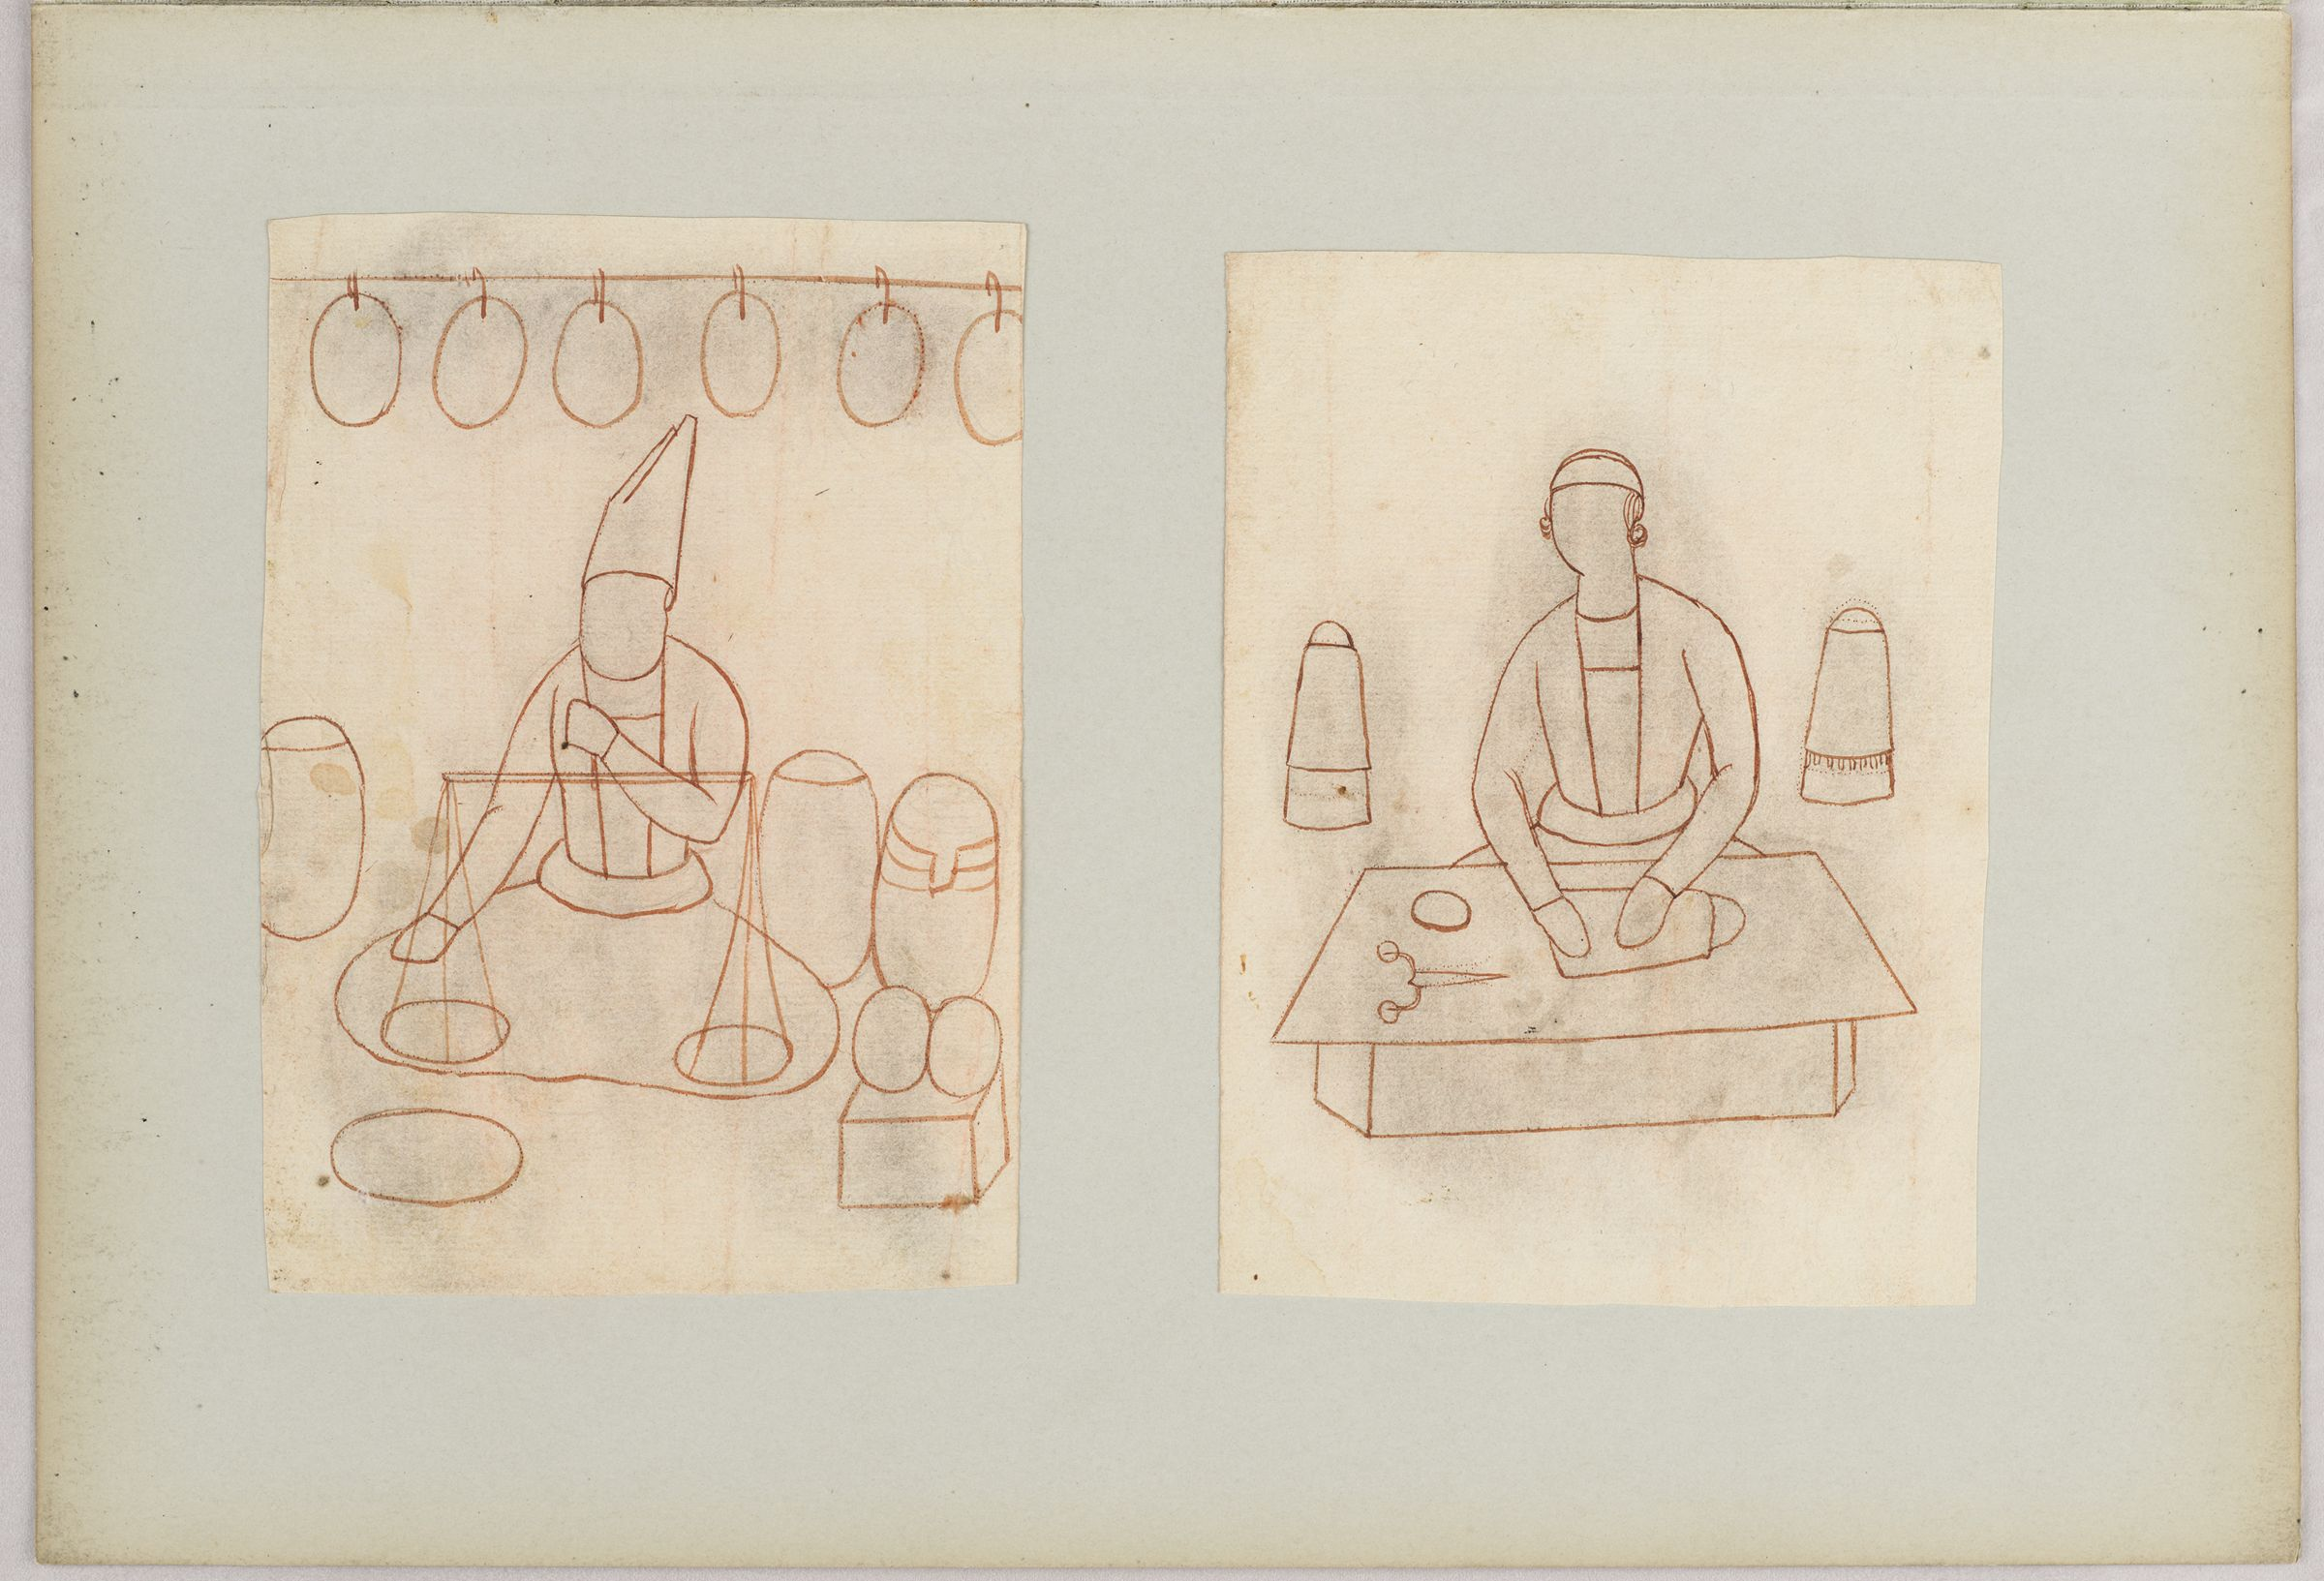 Folio 14 From An Album Of Drawings And Paintings: Two Drawings Of Workmen: Vendor And Hat Maker (Recto); Blank Page (Verso)